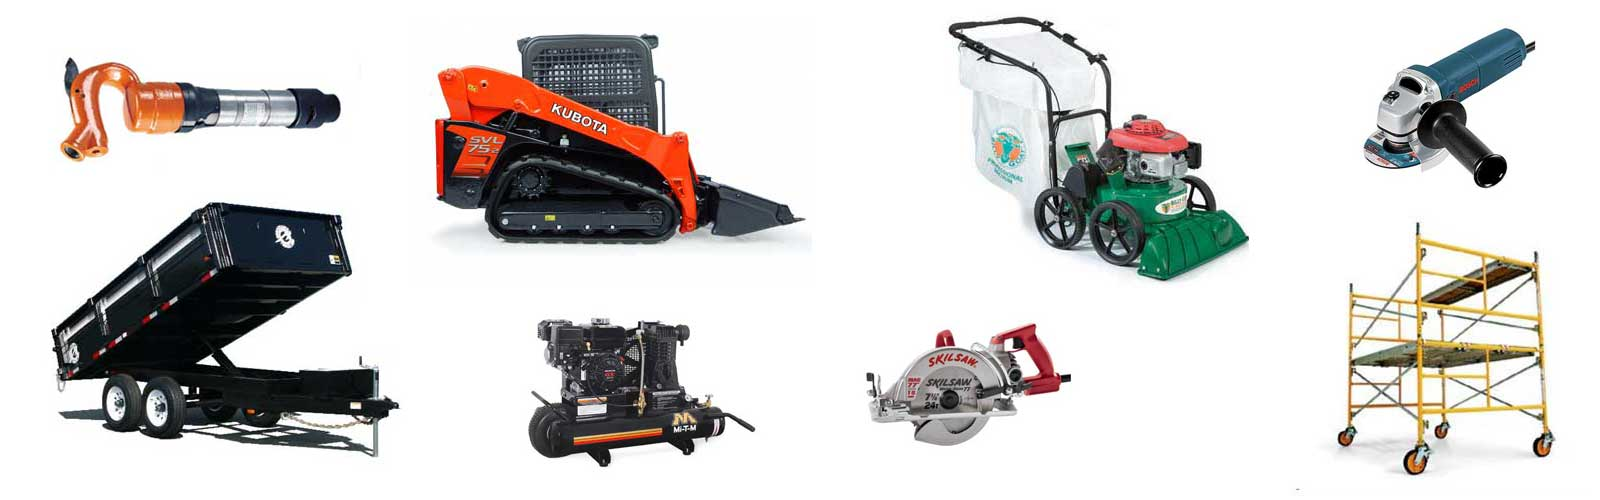 Equipment rentals in East King and Southern Snohomish Counties